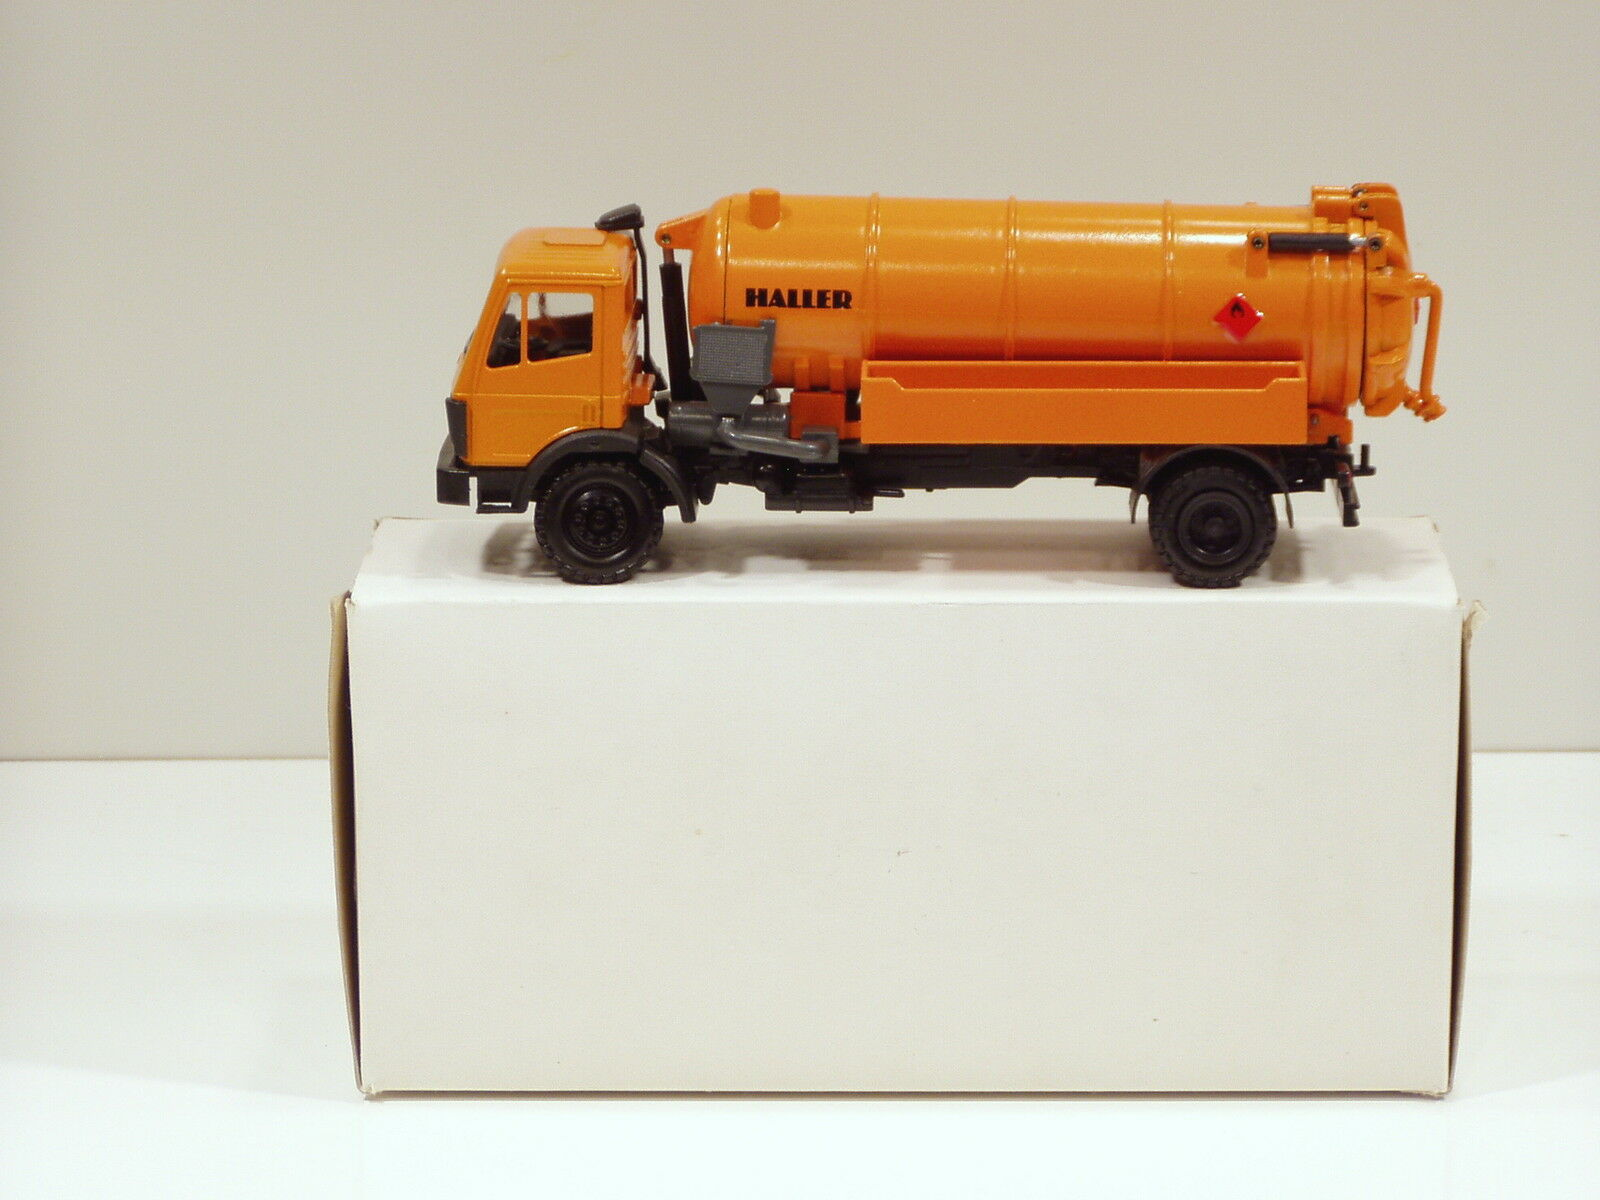 Mercedes Benz  Haller vide Camion - 1 50 - Conrad  3066 - N. Comme neuf IN BOX  nouveau style